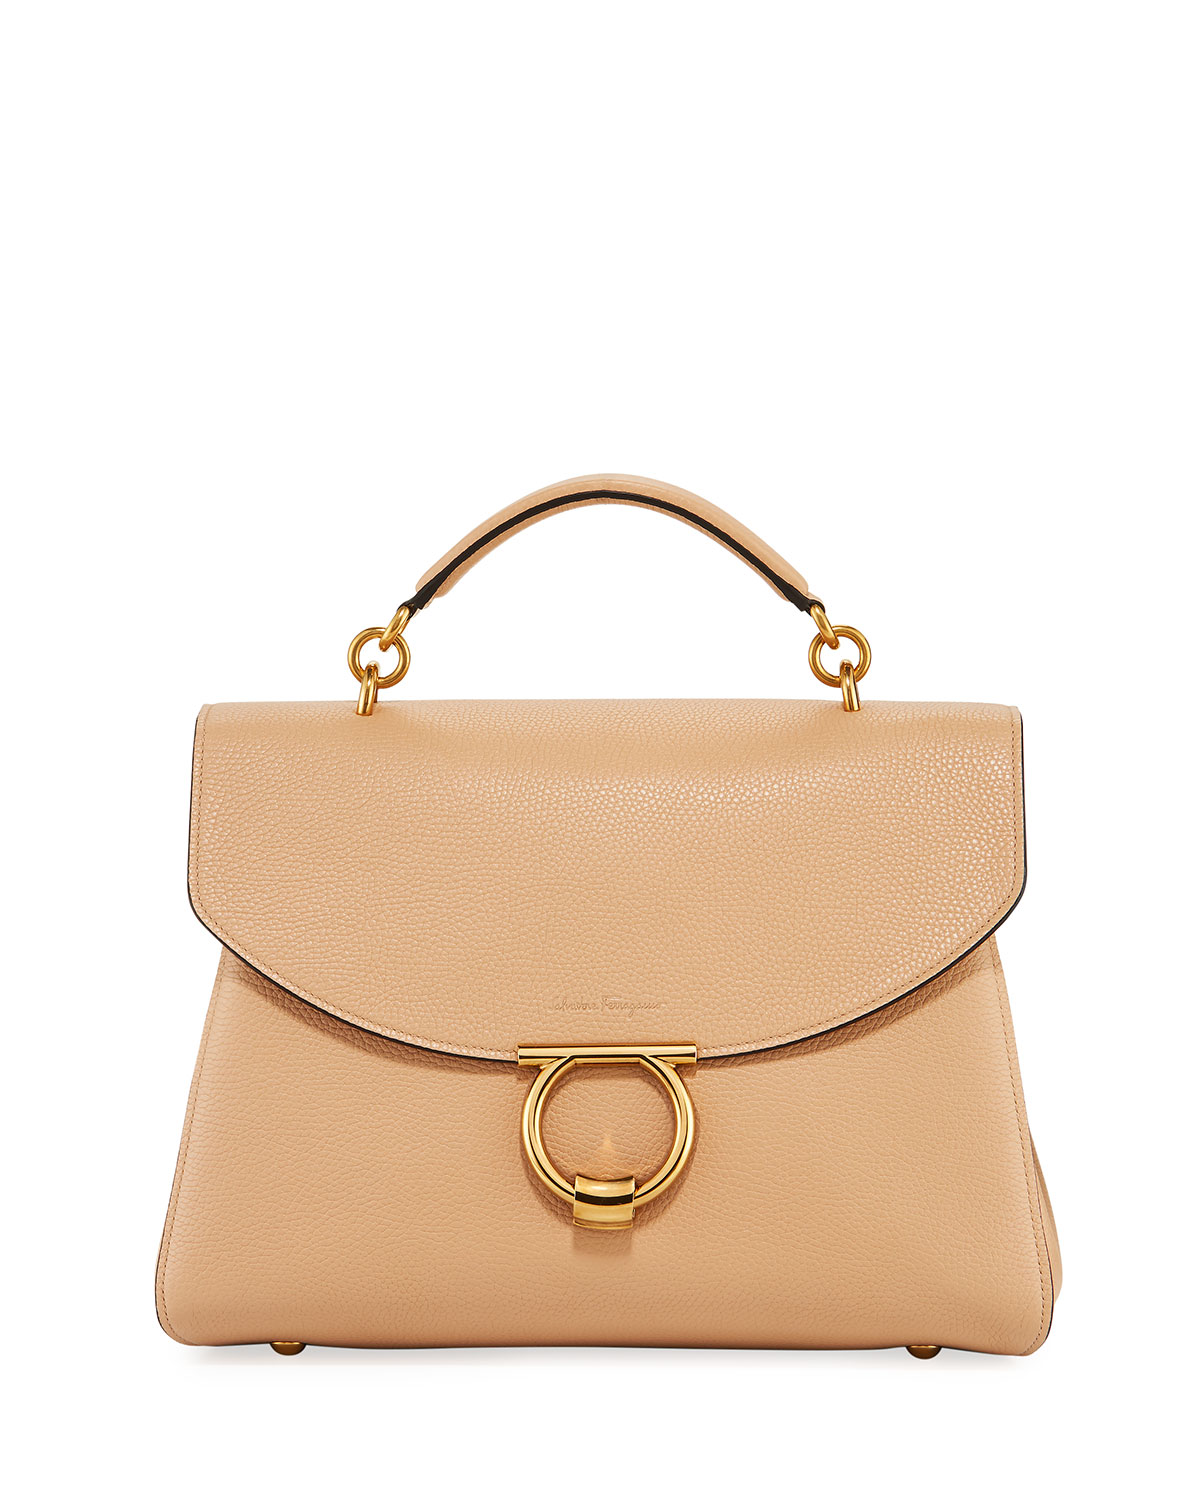 Salvatore Ferragamo Margot Medium Top Handle Bag, Almond Beige ... 47a6aef78a